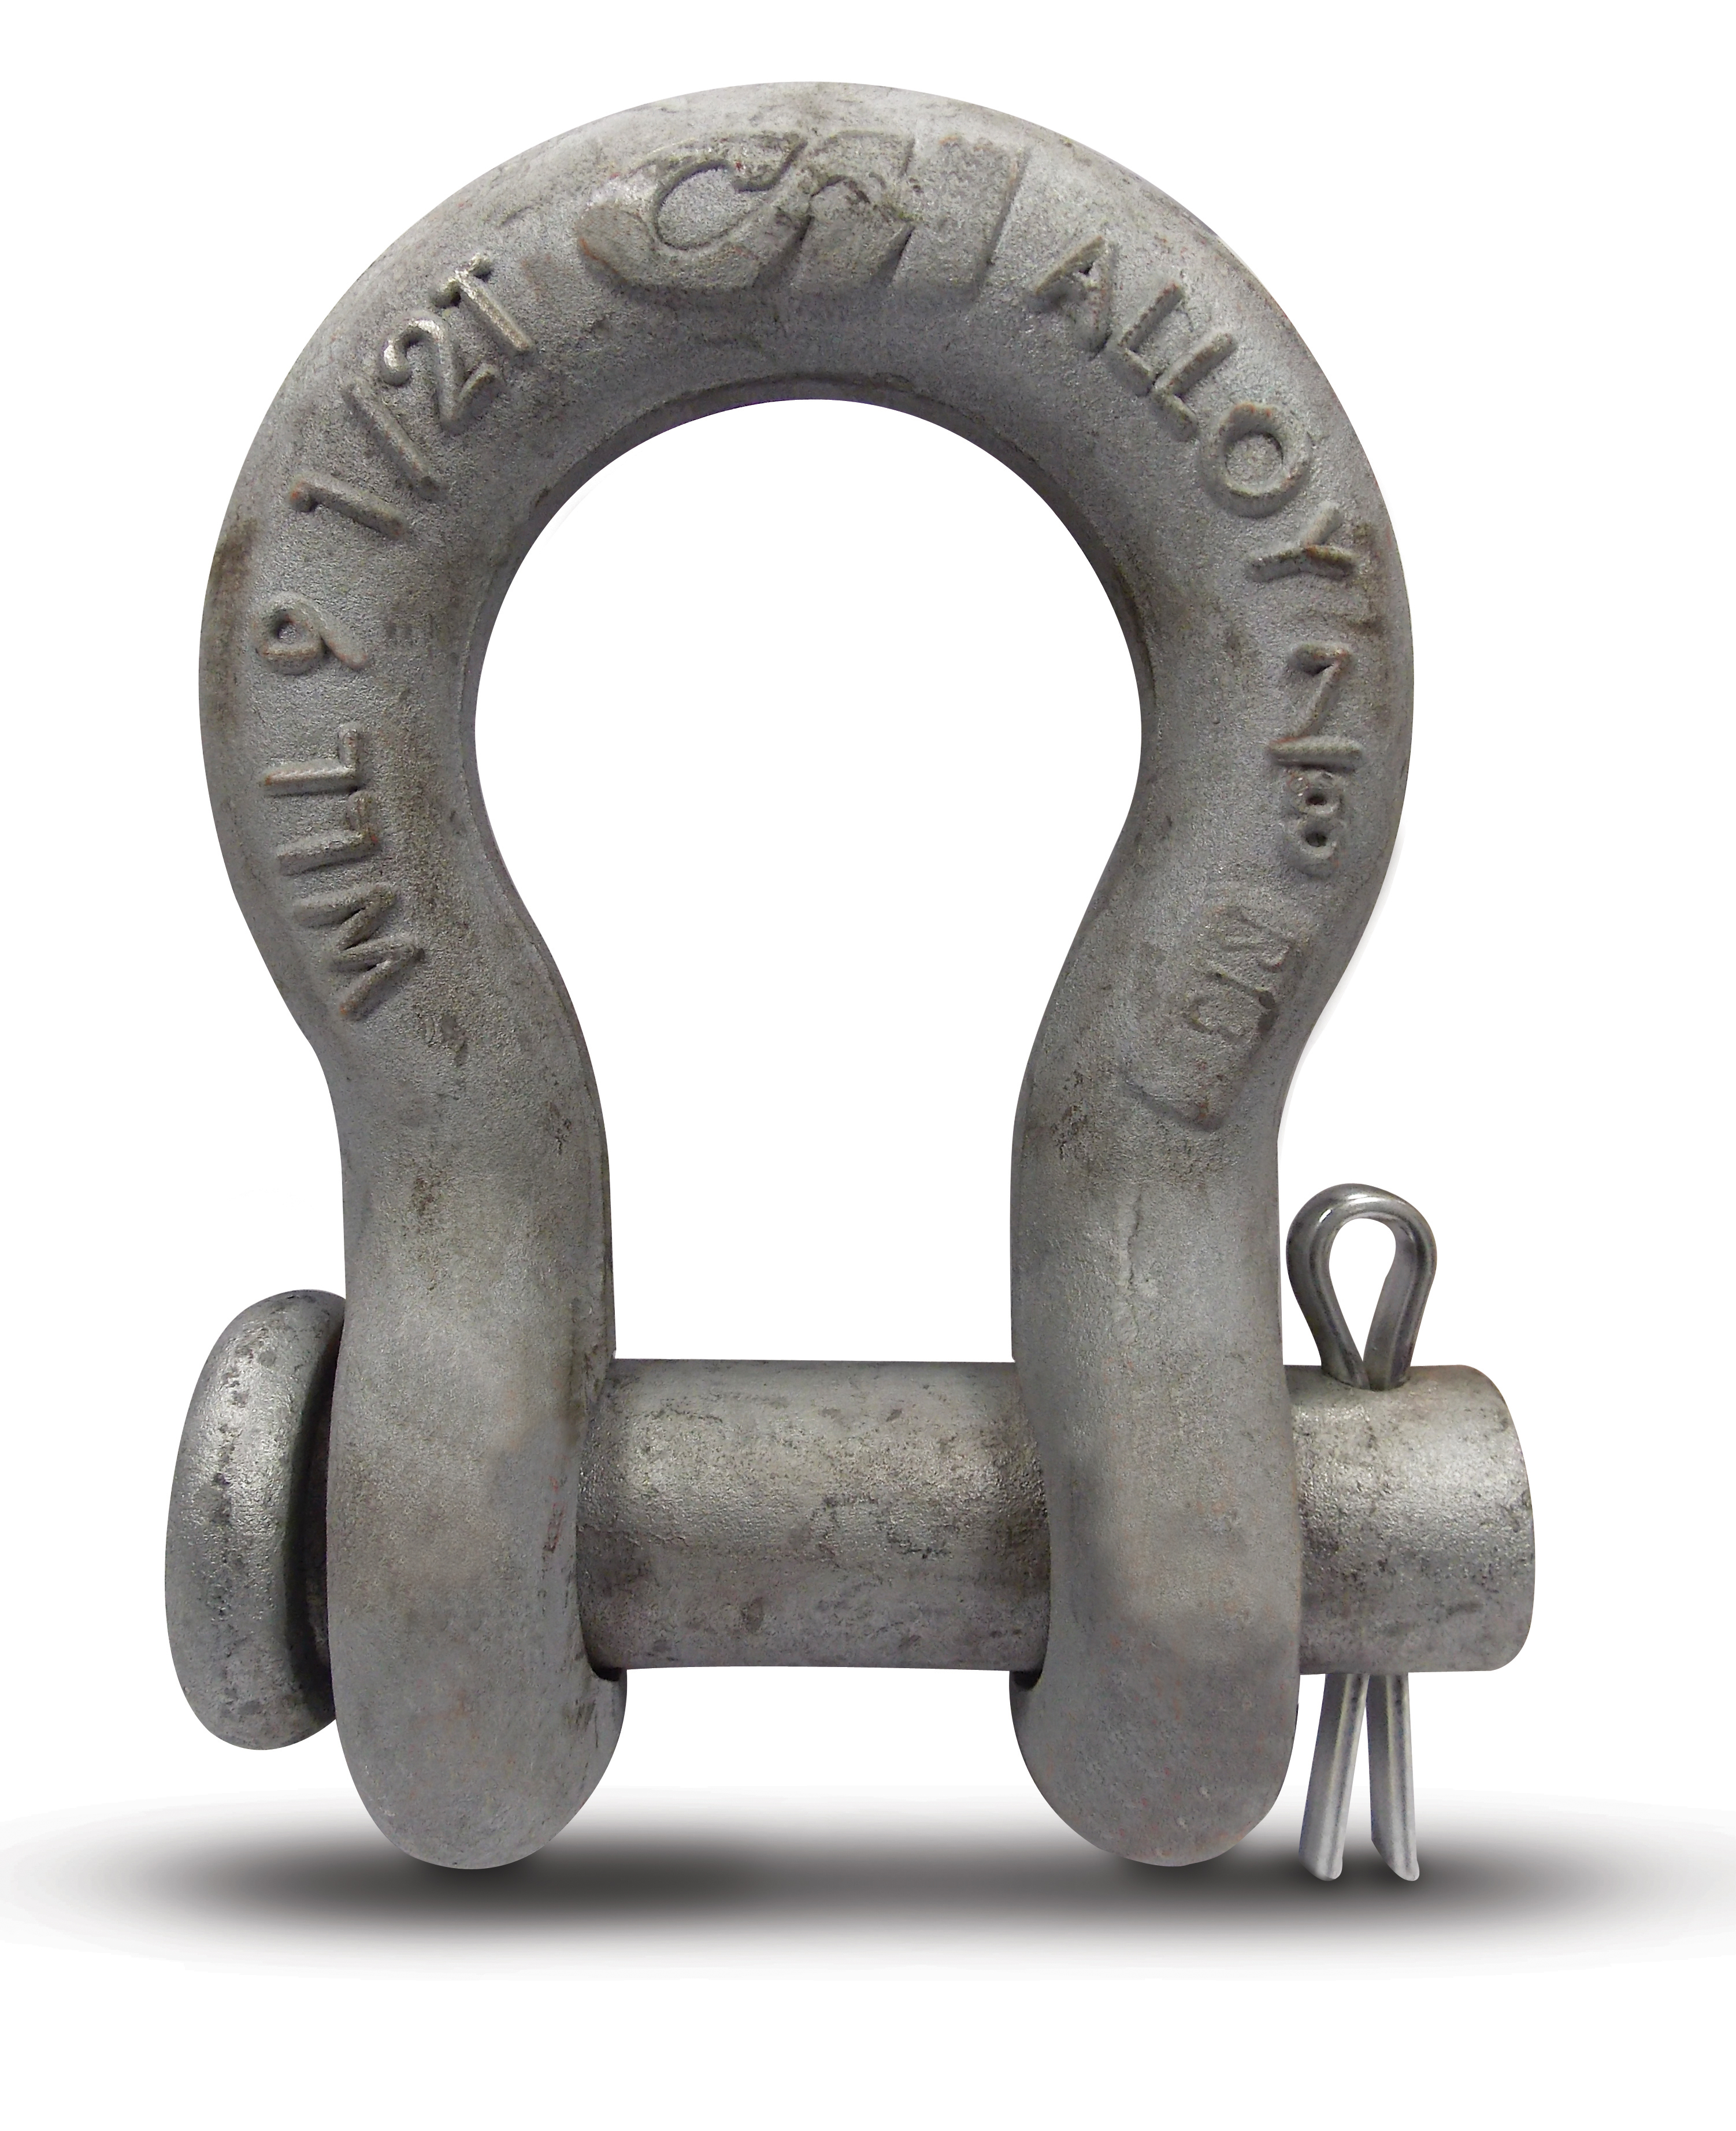 53-cmrigging_shackles-alloy-anchor-roundpin-galvanized